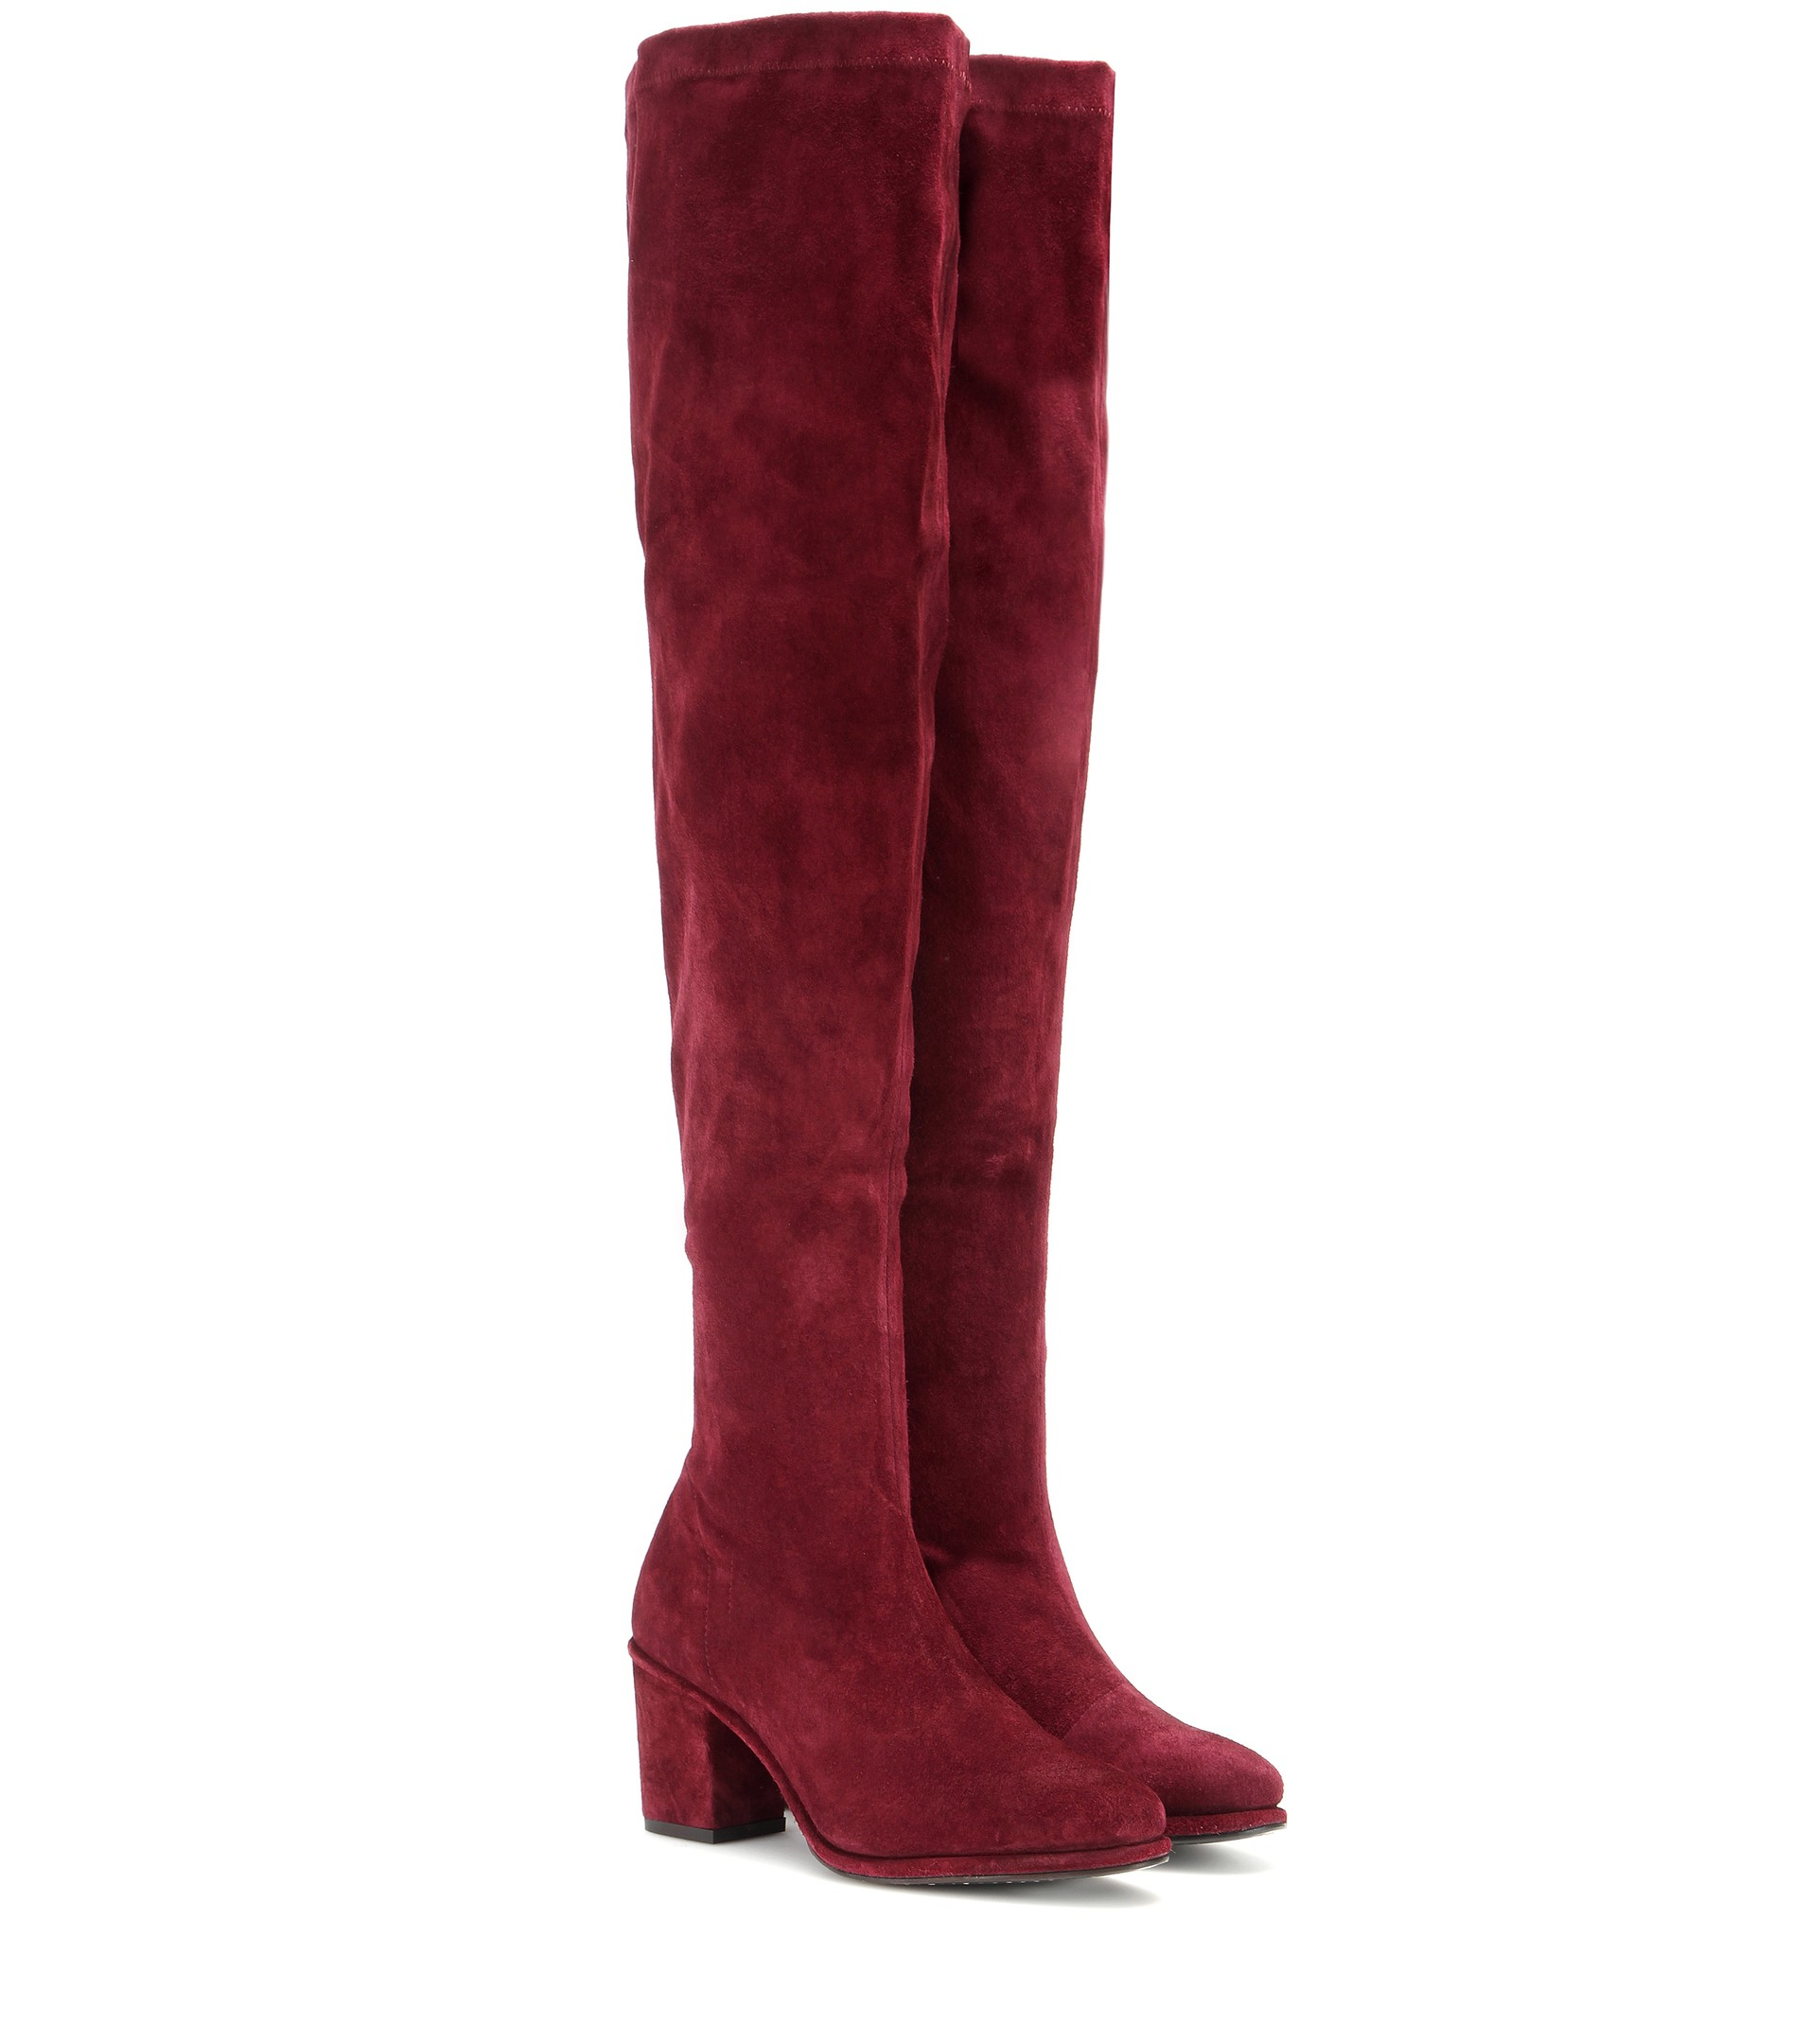 Opening ceremony Suede Over-The-Knee Boots in Purple | Lyst